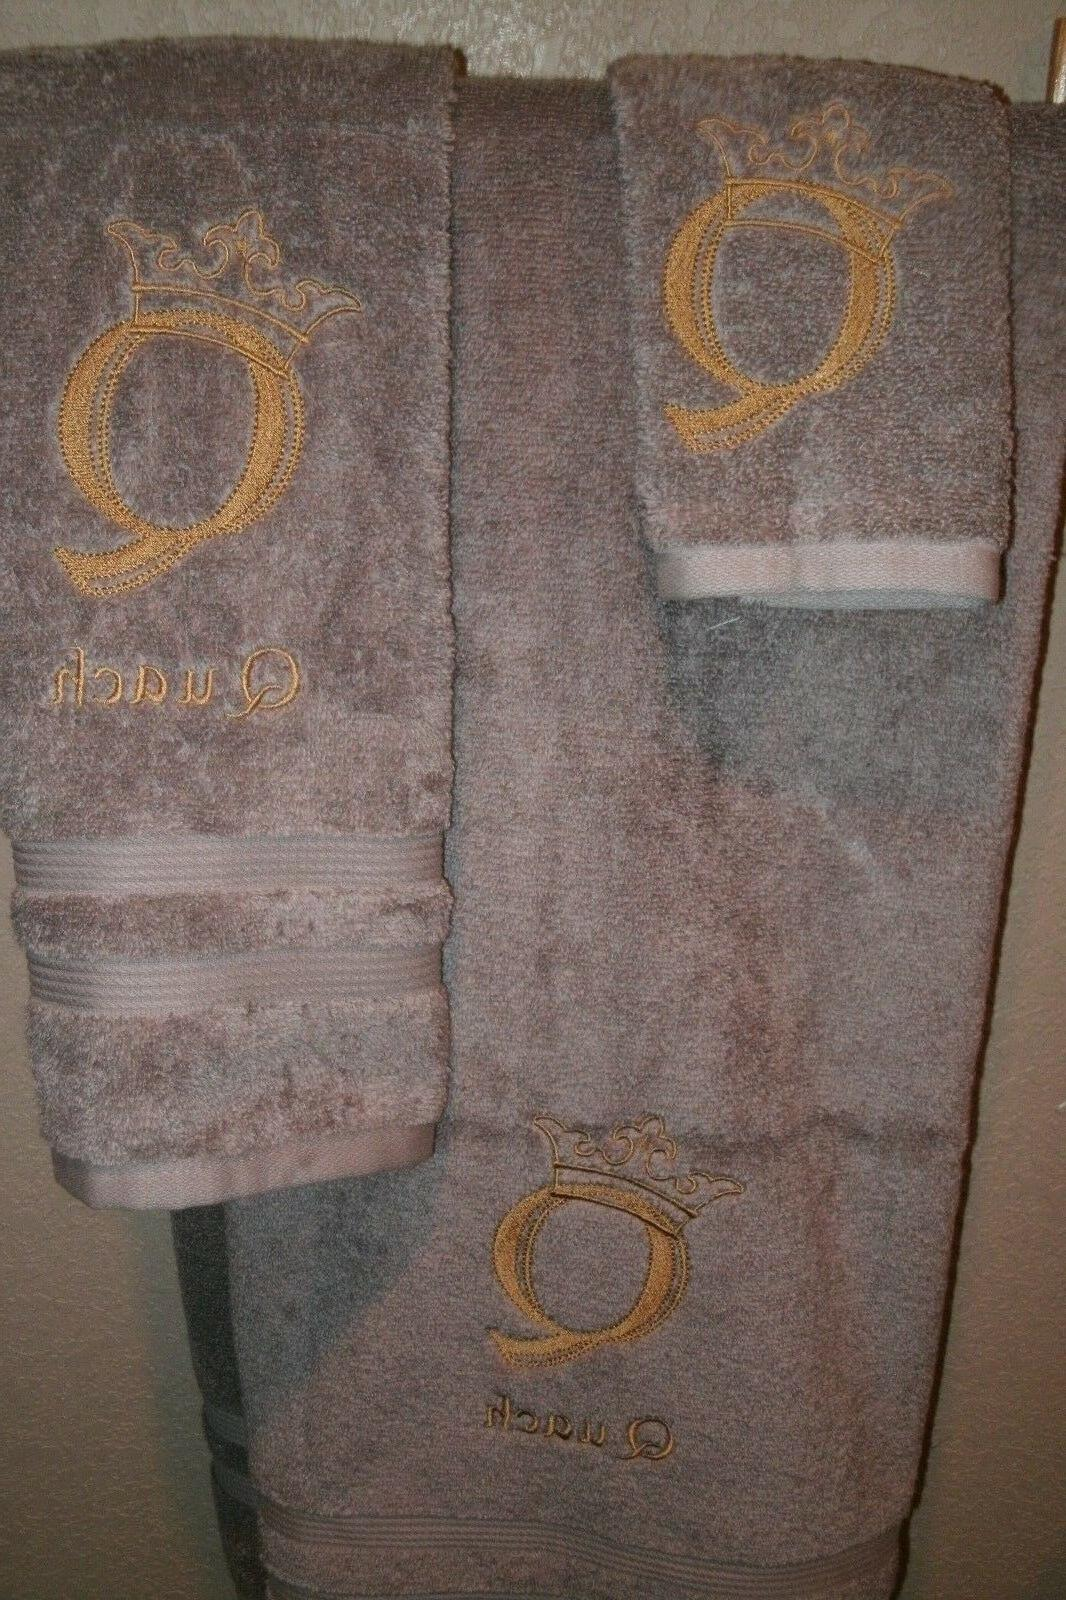 Monogram Engraved Personalized Piece Towel ANY